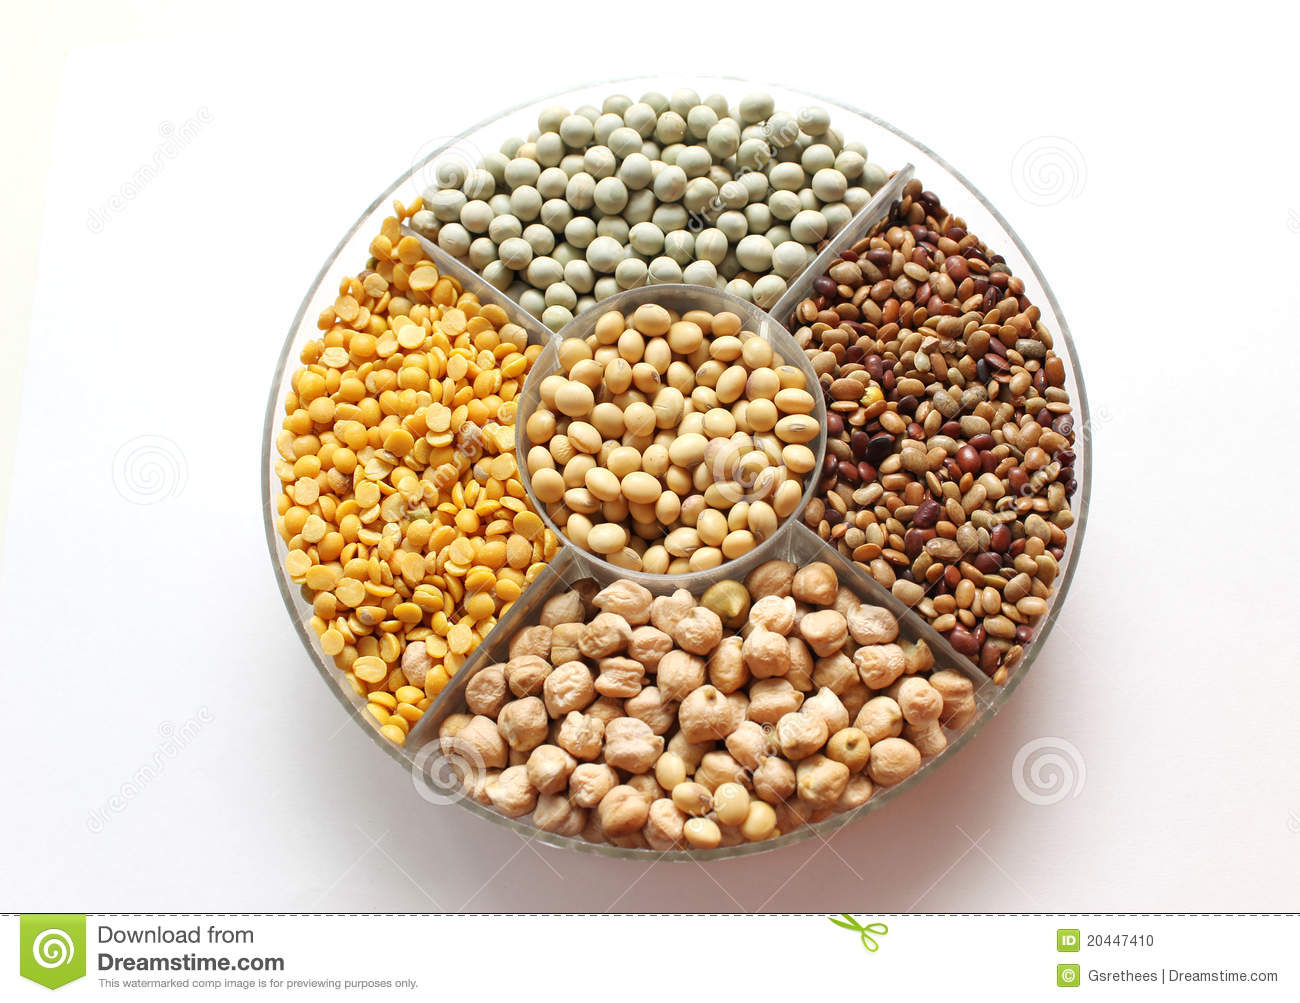 Grains Pulses Beans Stock Photos, Images, & Pictures.